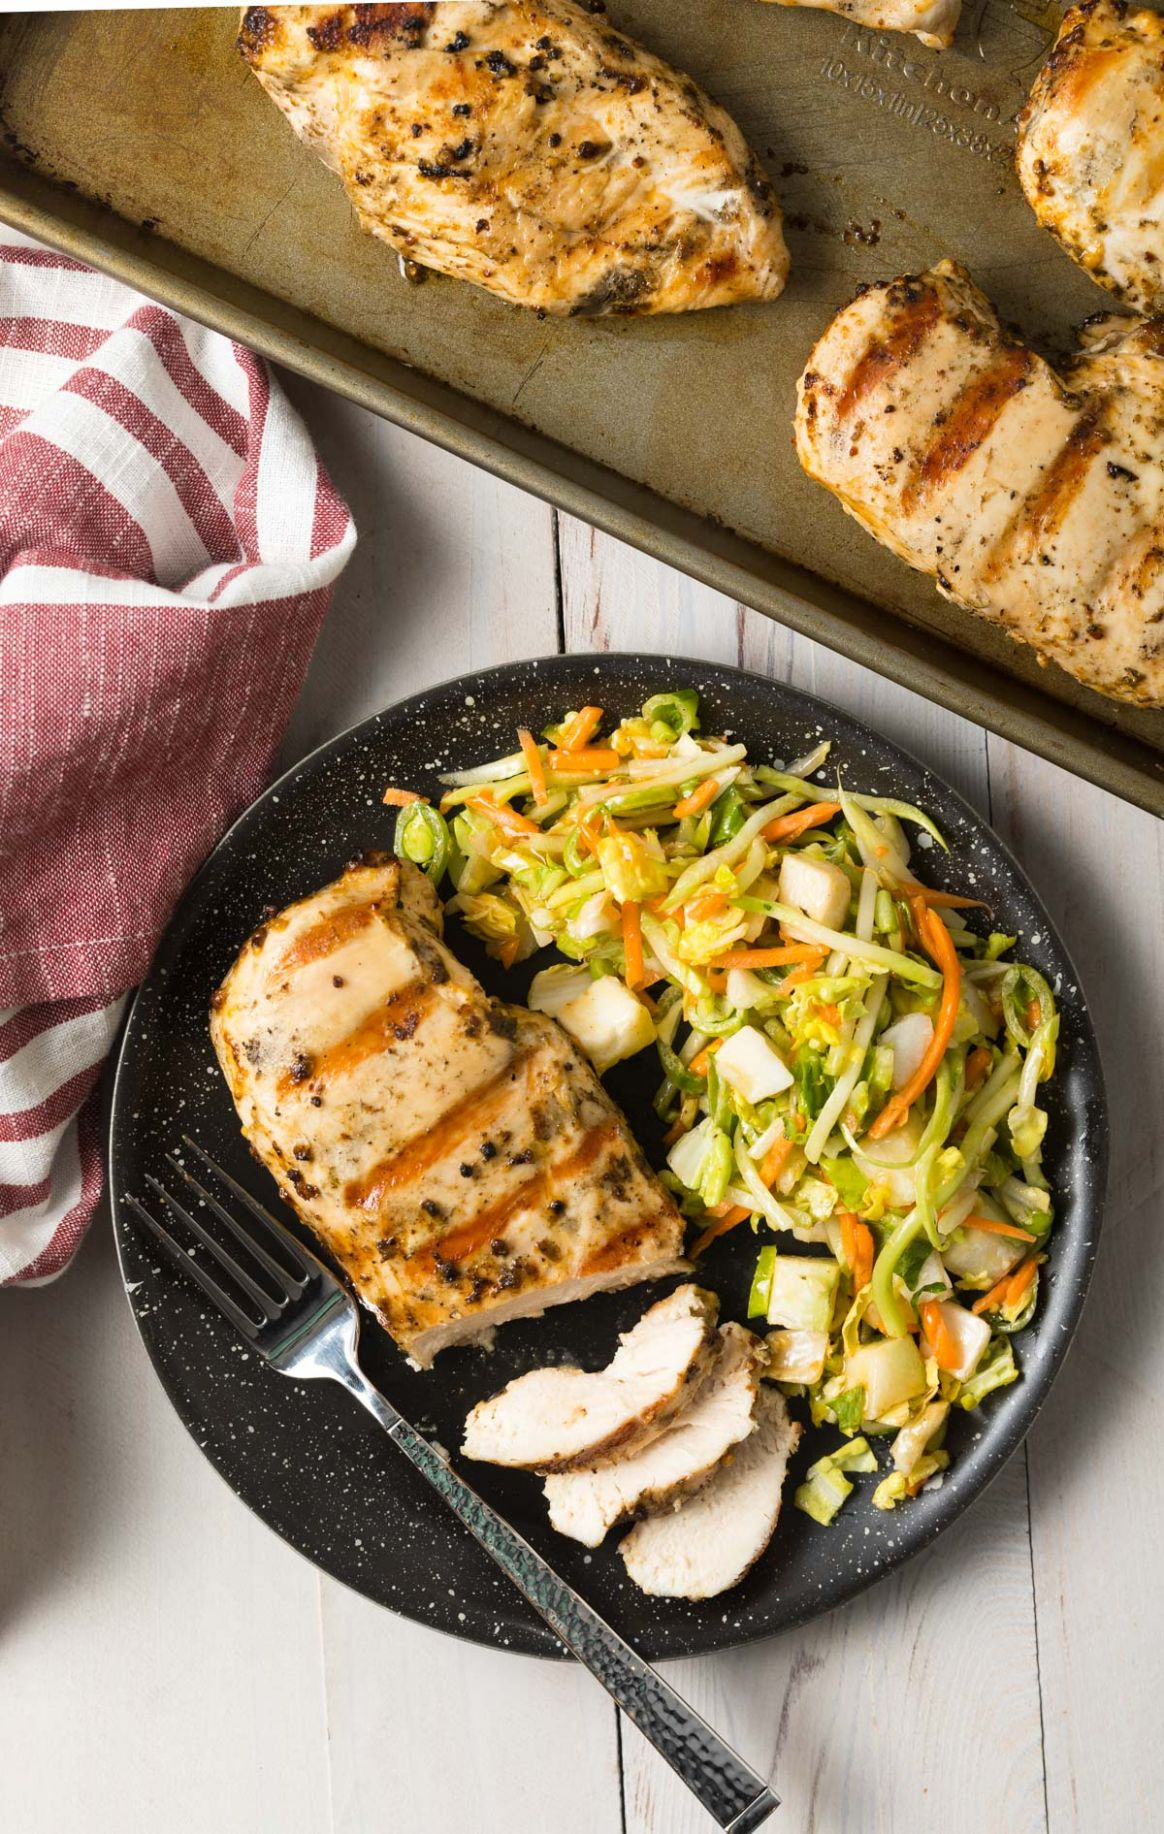 11-Ingredient Magic Grilled Chicken Breast Recipe